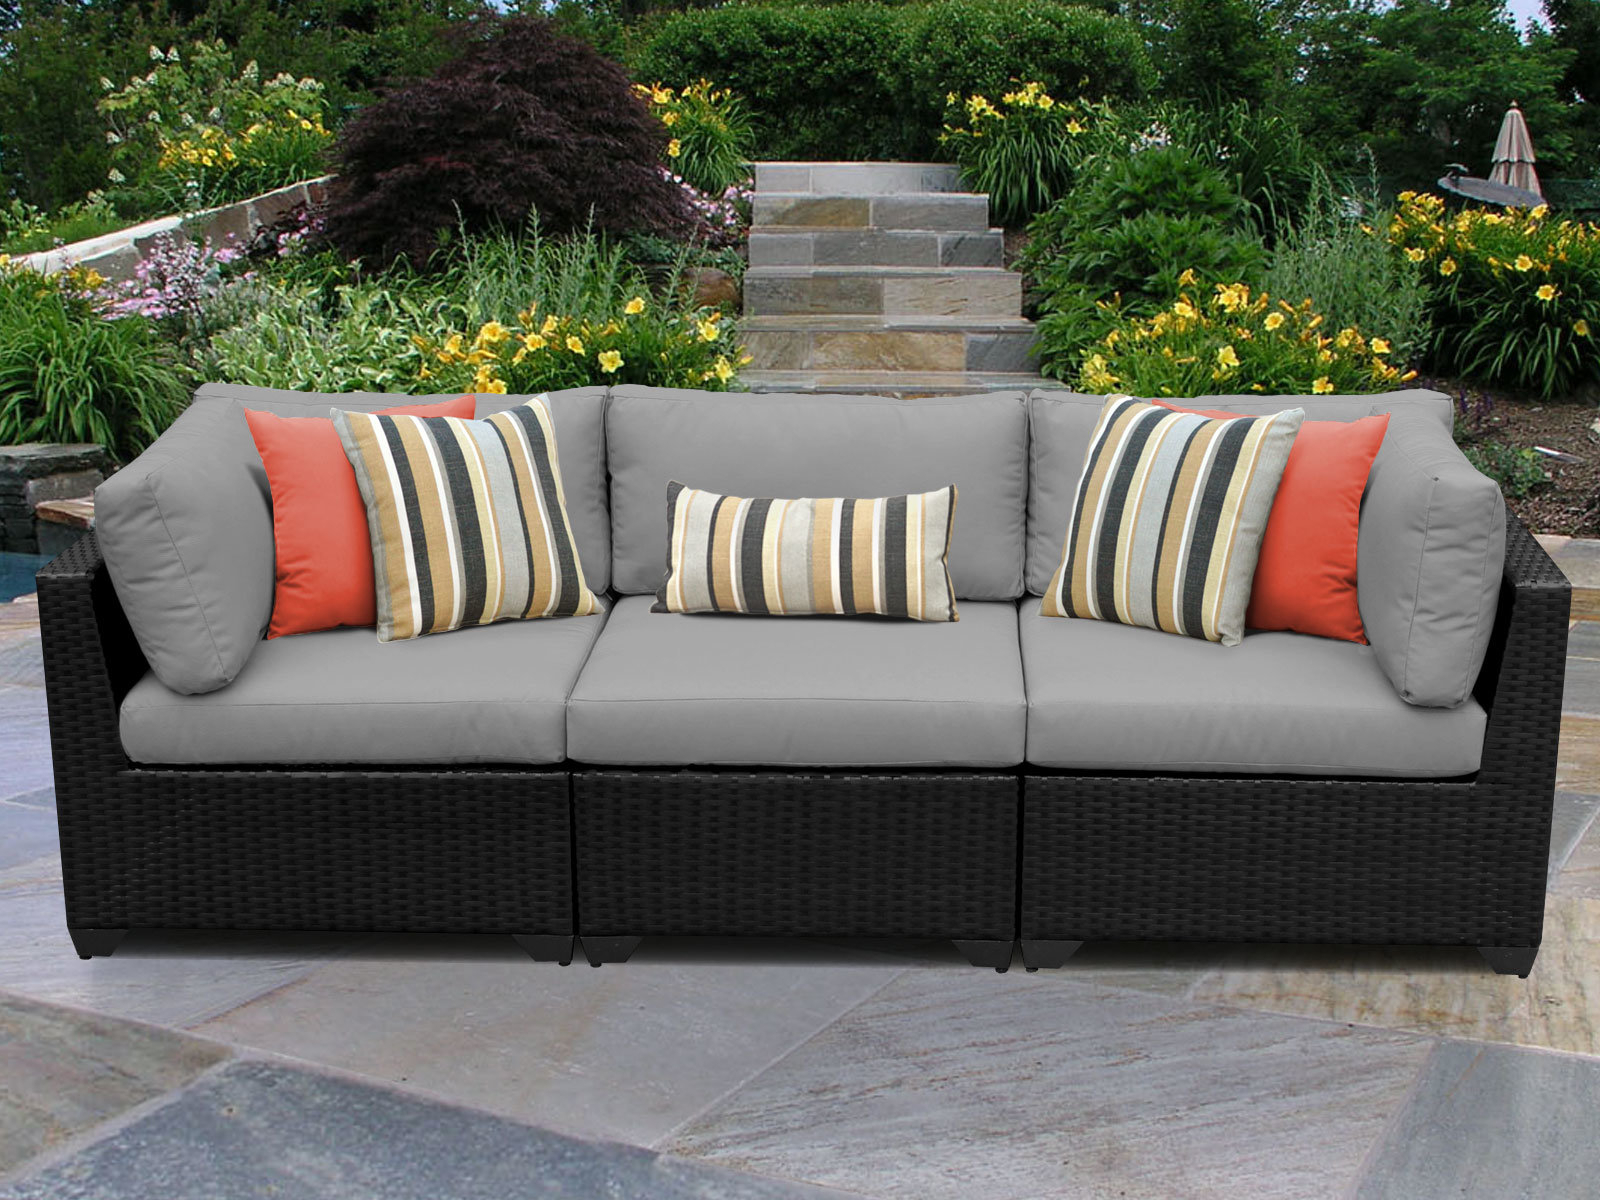 Meeks Patio Sofas With Cushions With Newest Camak Patio Sofa With Cushions (View 14 of 20)